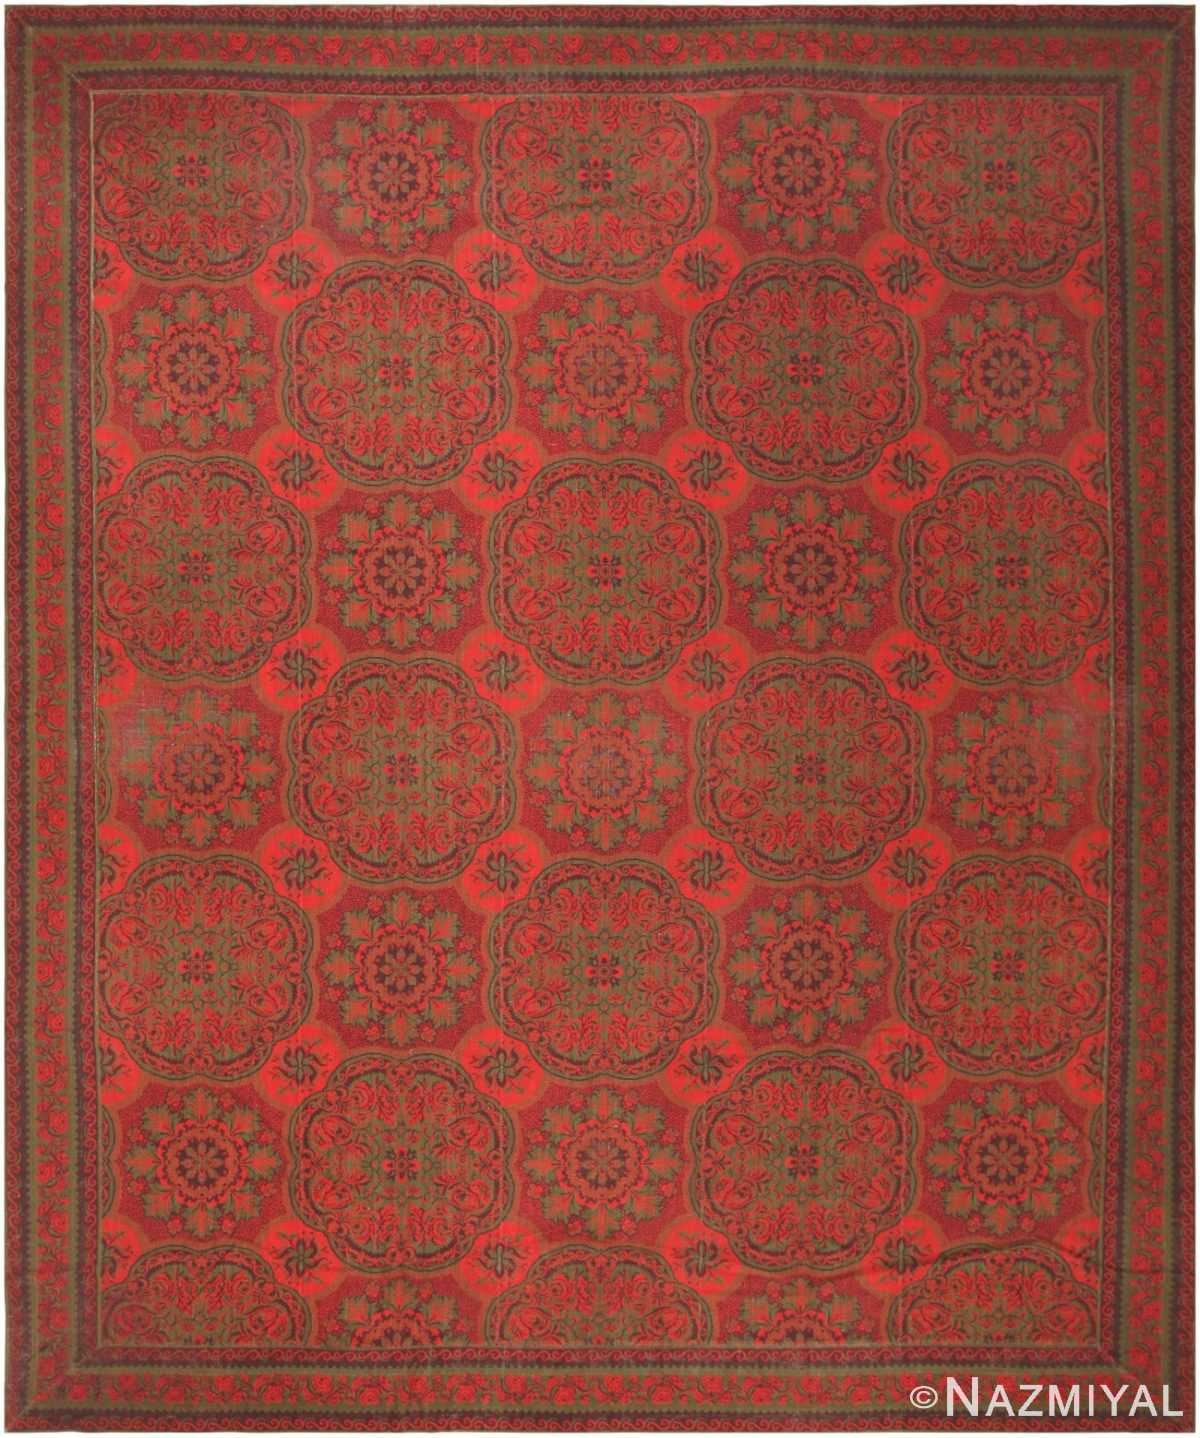 Antique American Axminster Carpet 42374 Nazmiyal